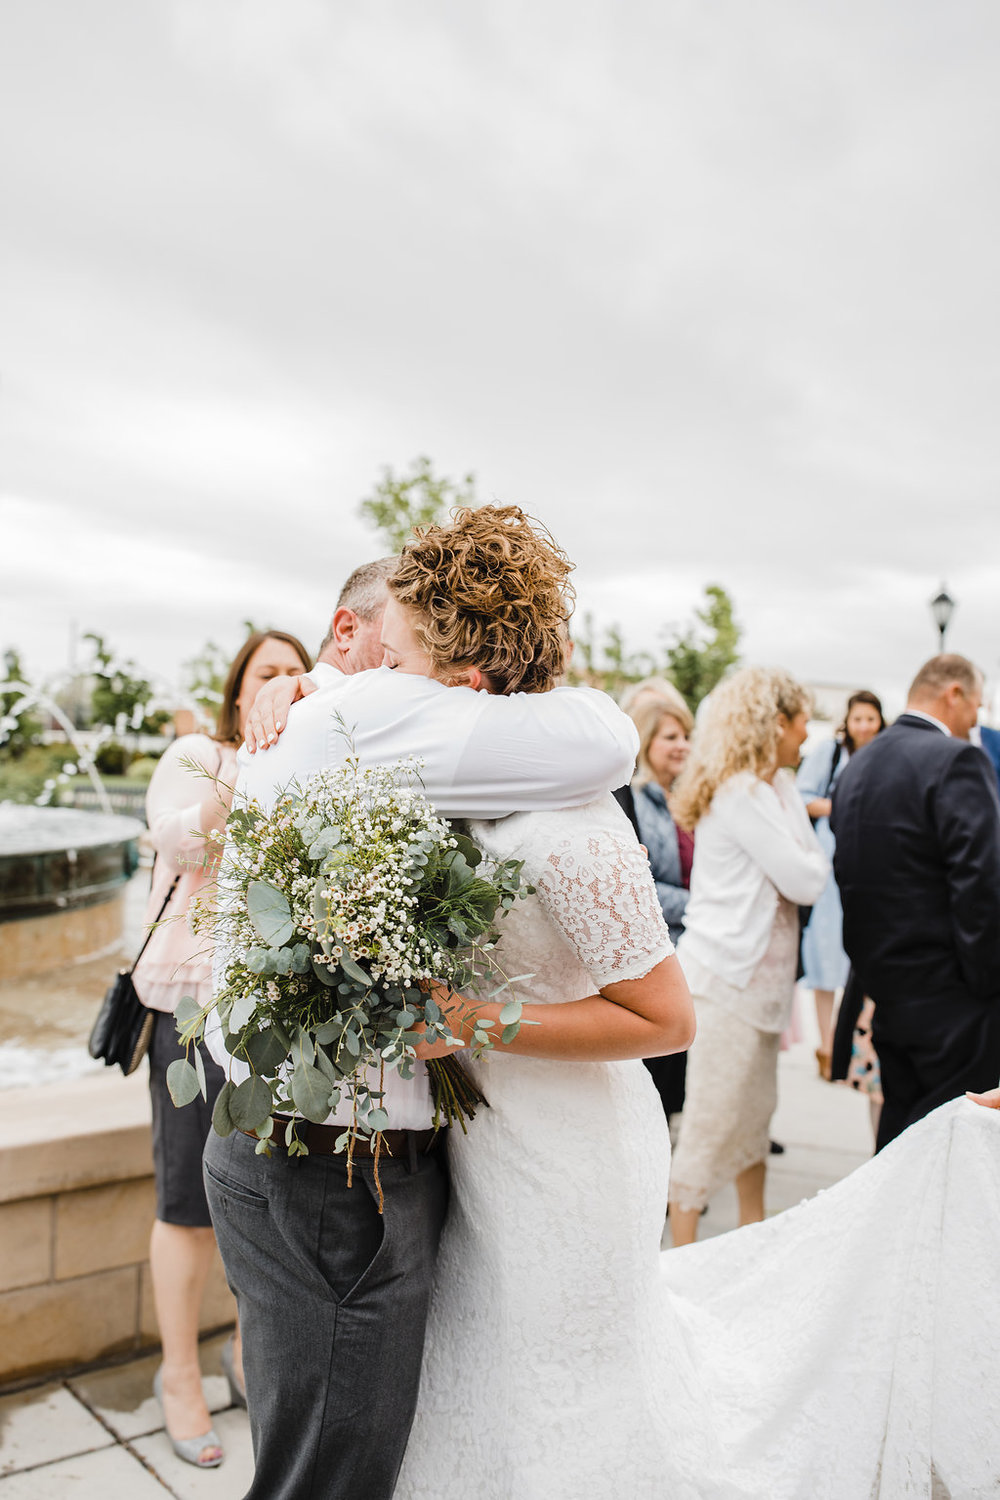 professional wedding photographer in provo utah northern utah wedding photography best photographer in northern utah